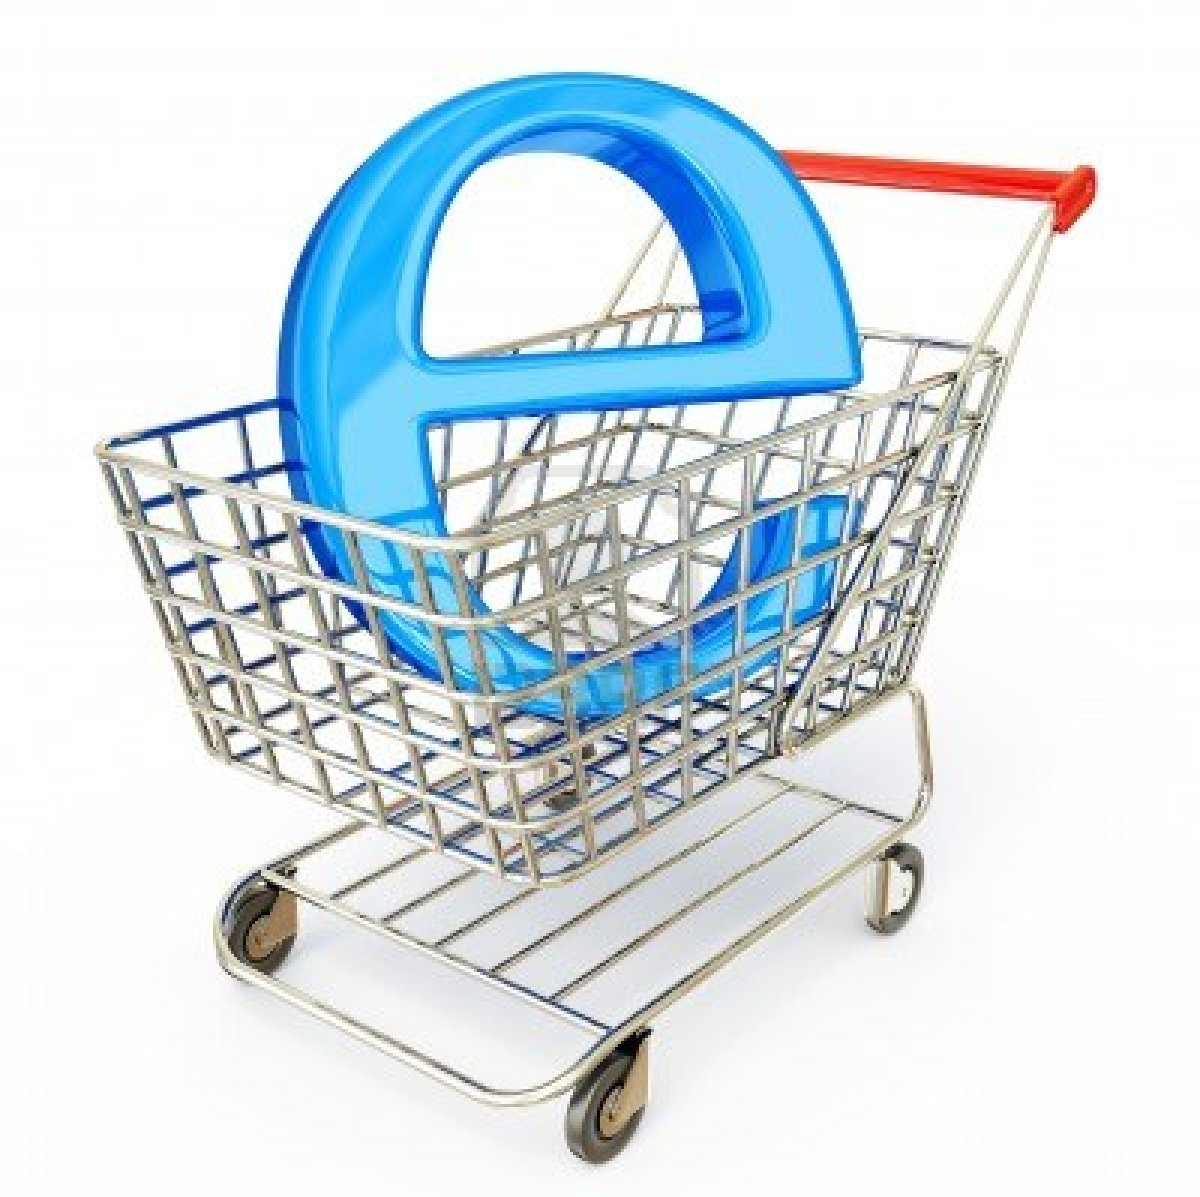 Say no to your bricks-and-mortar business and embrace E-commerce